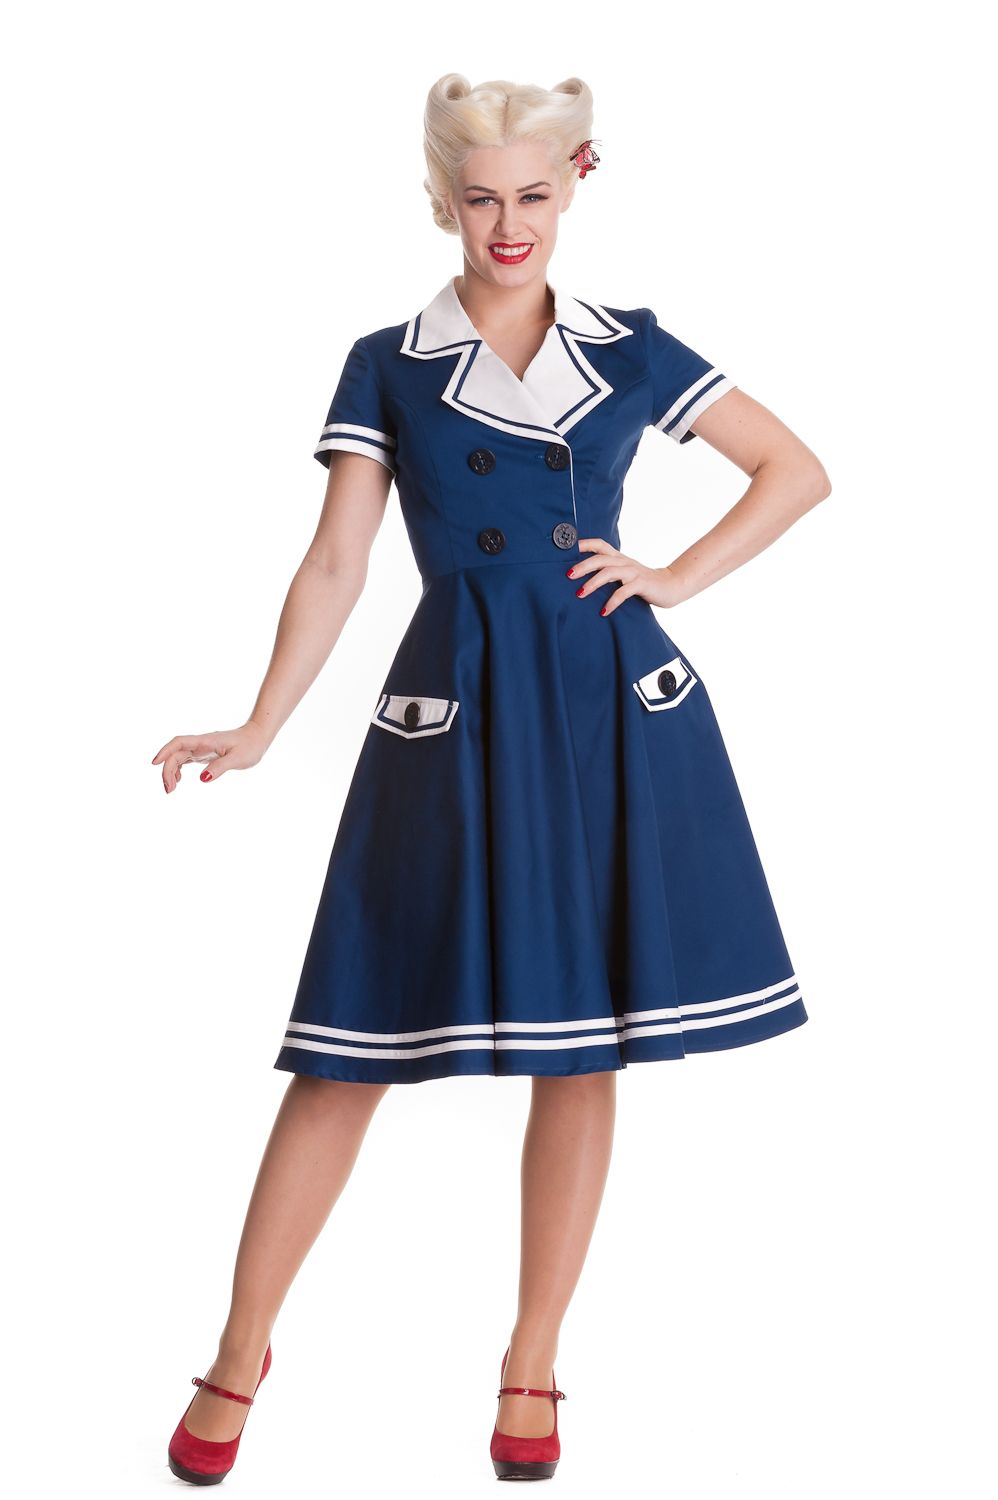 d73a5be687efc The gorgeous Seafarer Dress by Hell Bunny - available in navy white and  black white